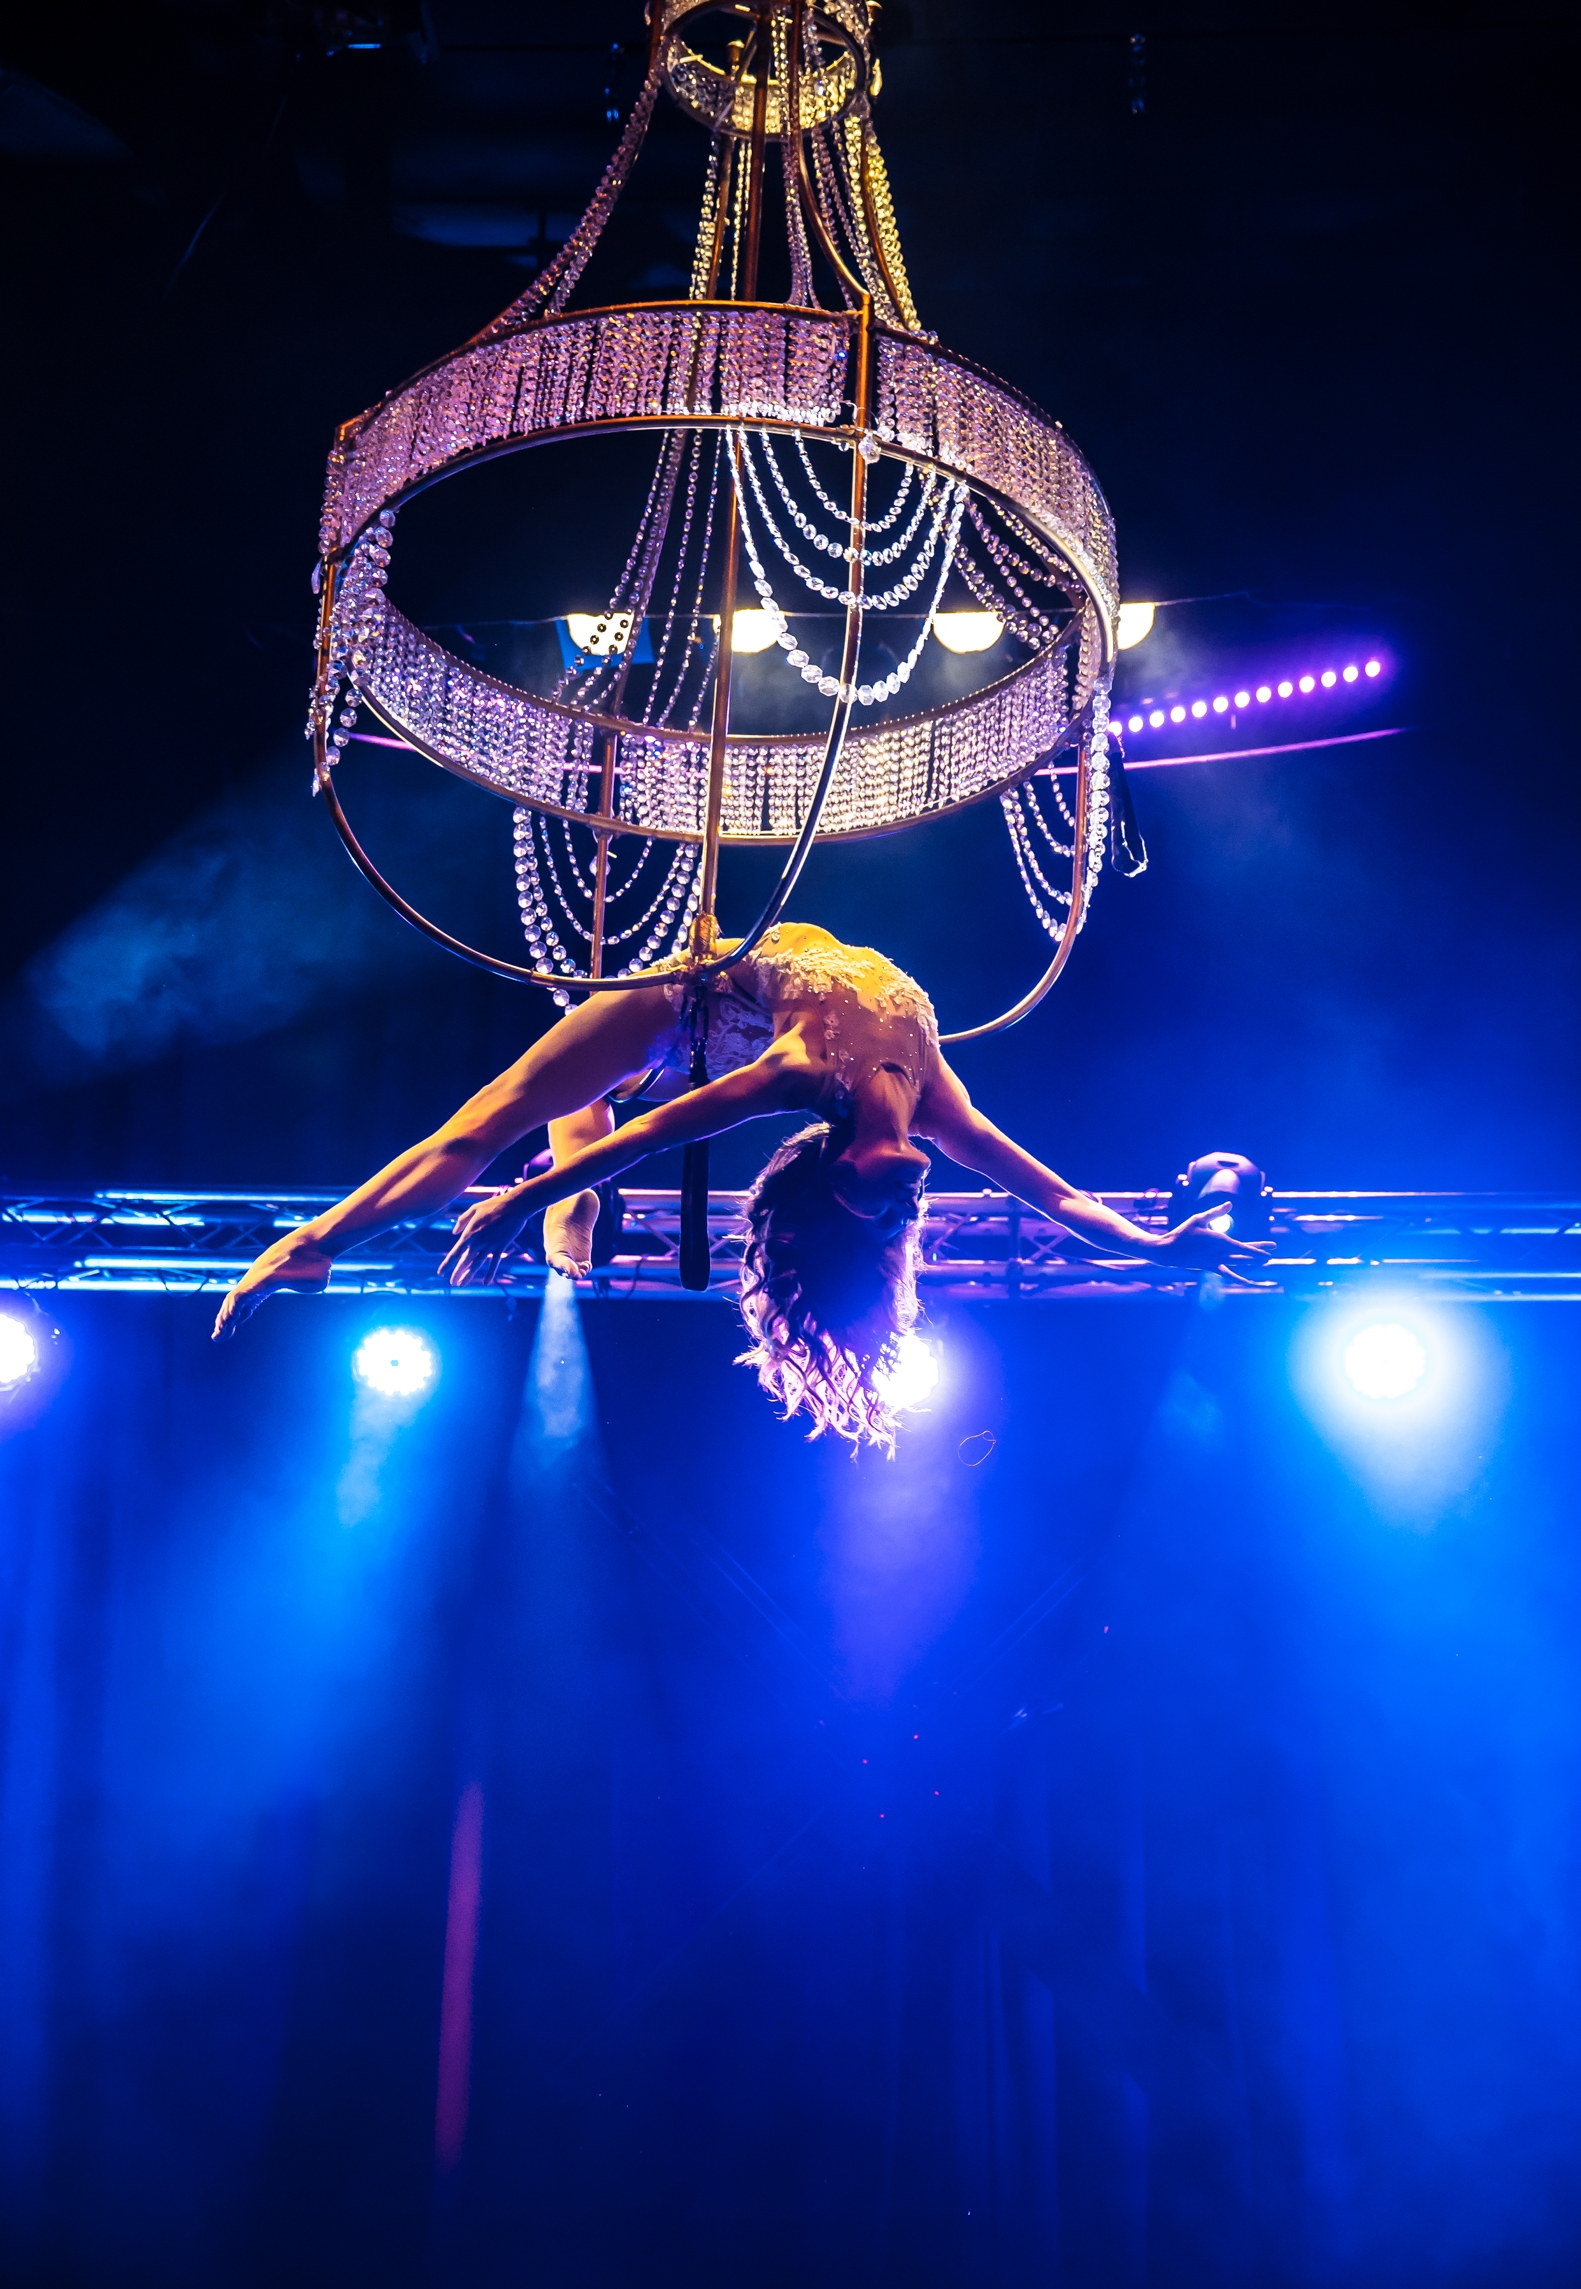 Kronleuchter Showact - Flying Chandelier Show - Aerial Chandelier Air Candy